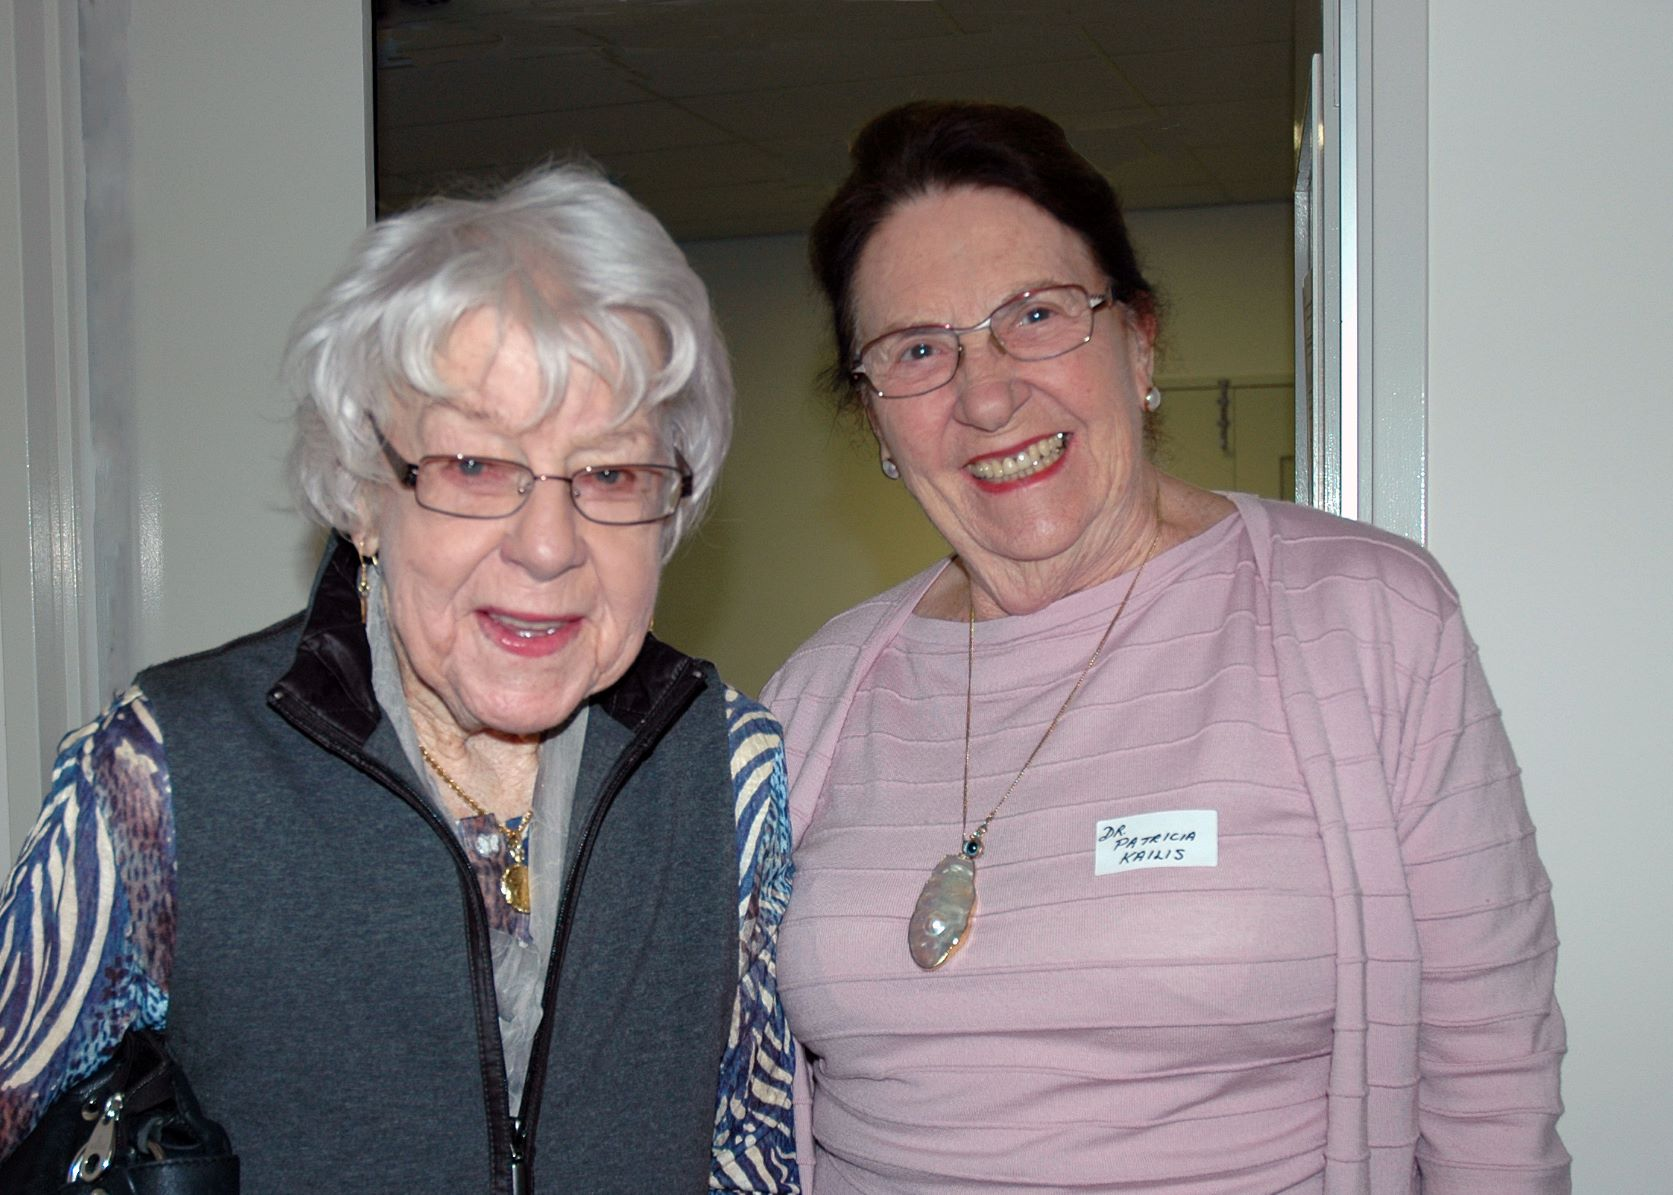 Indigo Founder the late Freda Jacob and Life Member the late Dr Patricia Kailis, both smiling